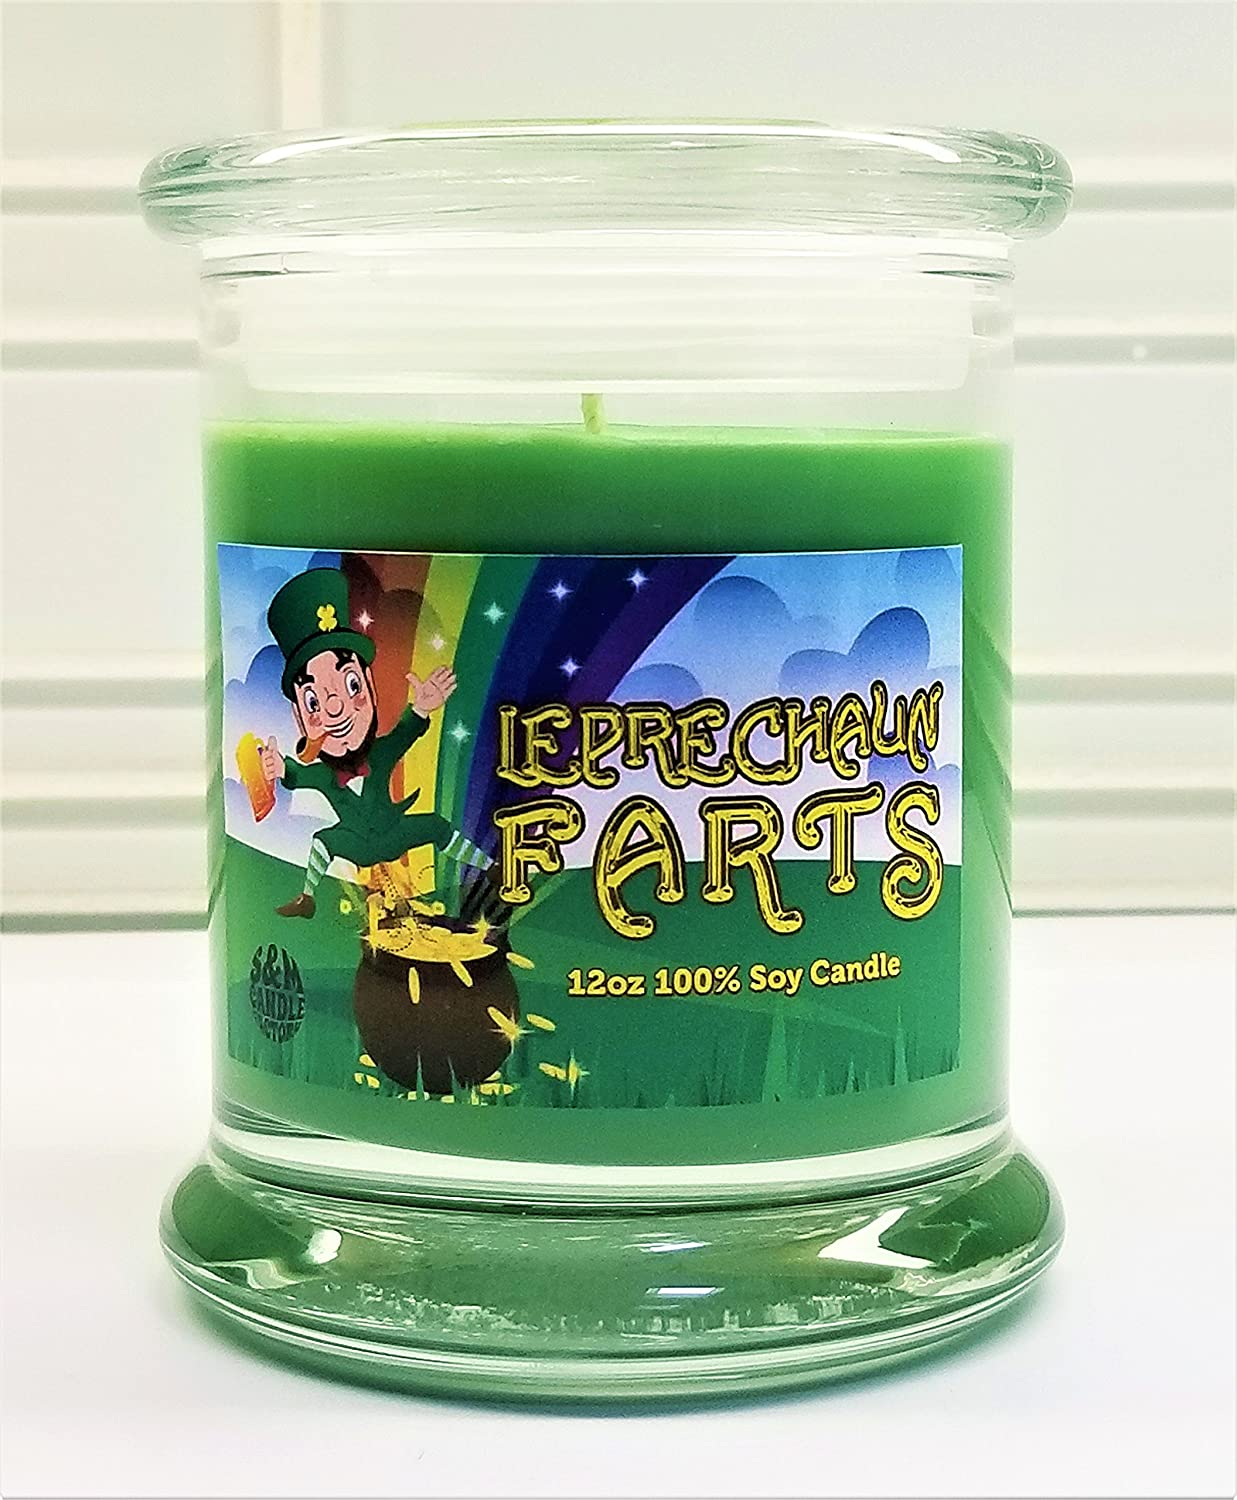 Leprechaun Farts Candle ~ St. Patrick's Day Scented Candle Soy Wax Candle ~ S&M Candle Factory (Green, 12oz)